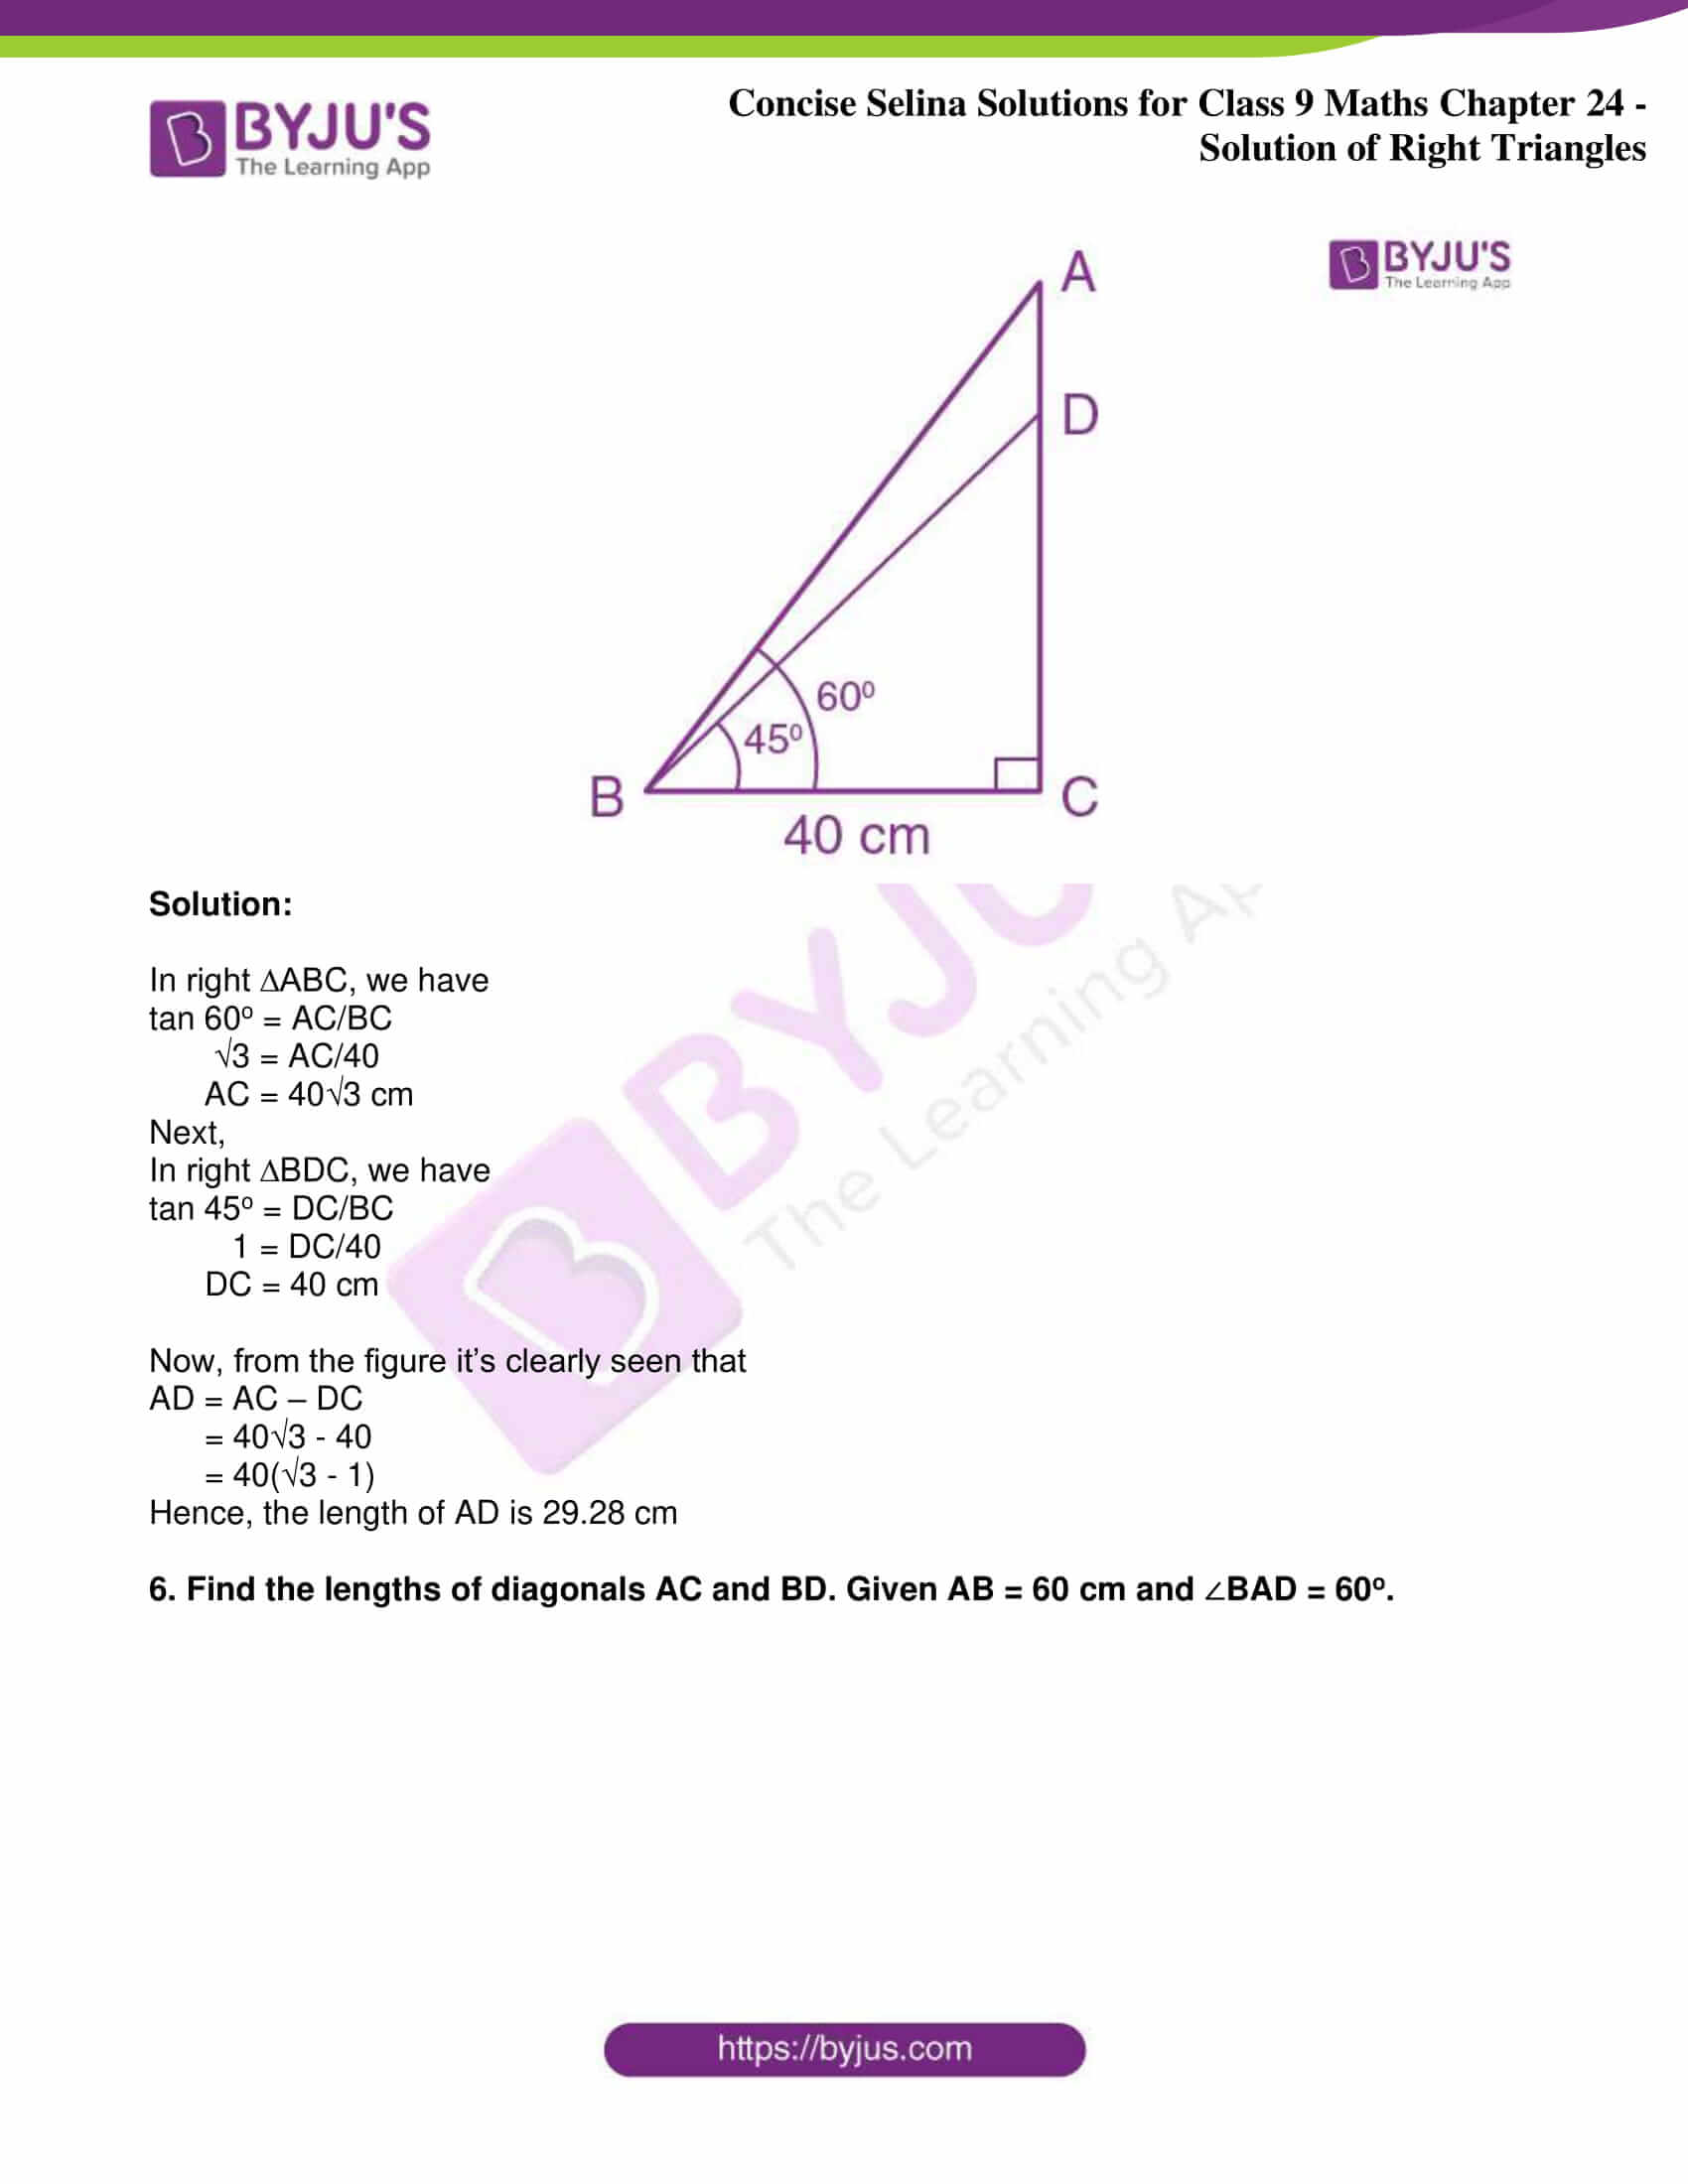 icse class 9 jun9 maths selina solutions chapter 24 solution of right triangles 05